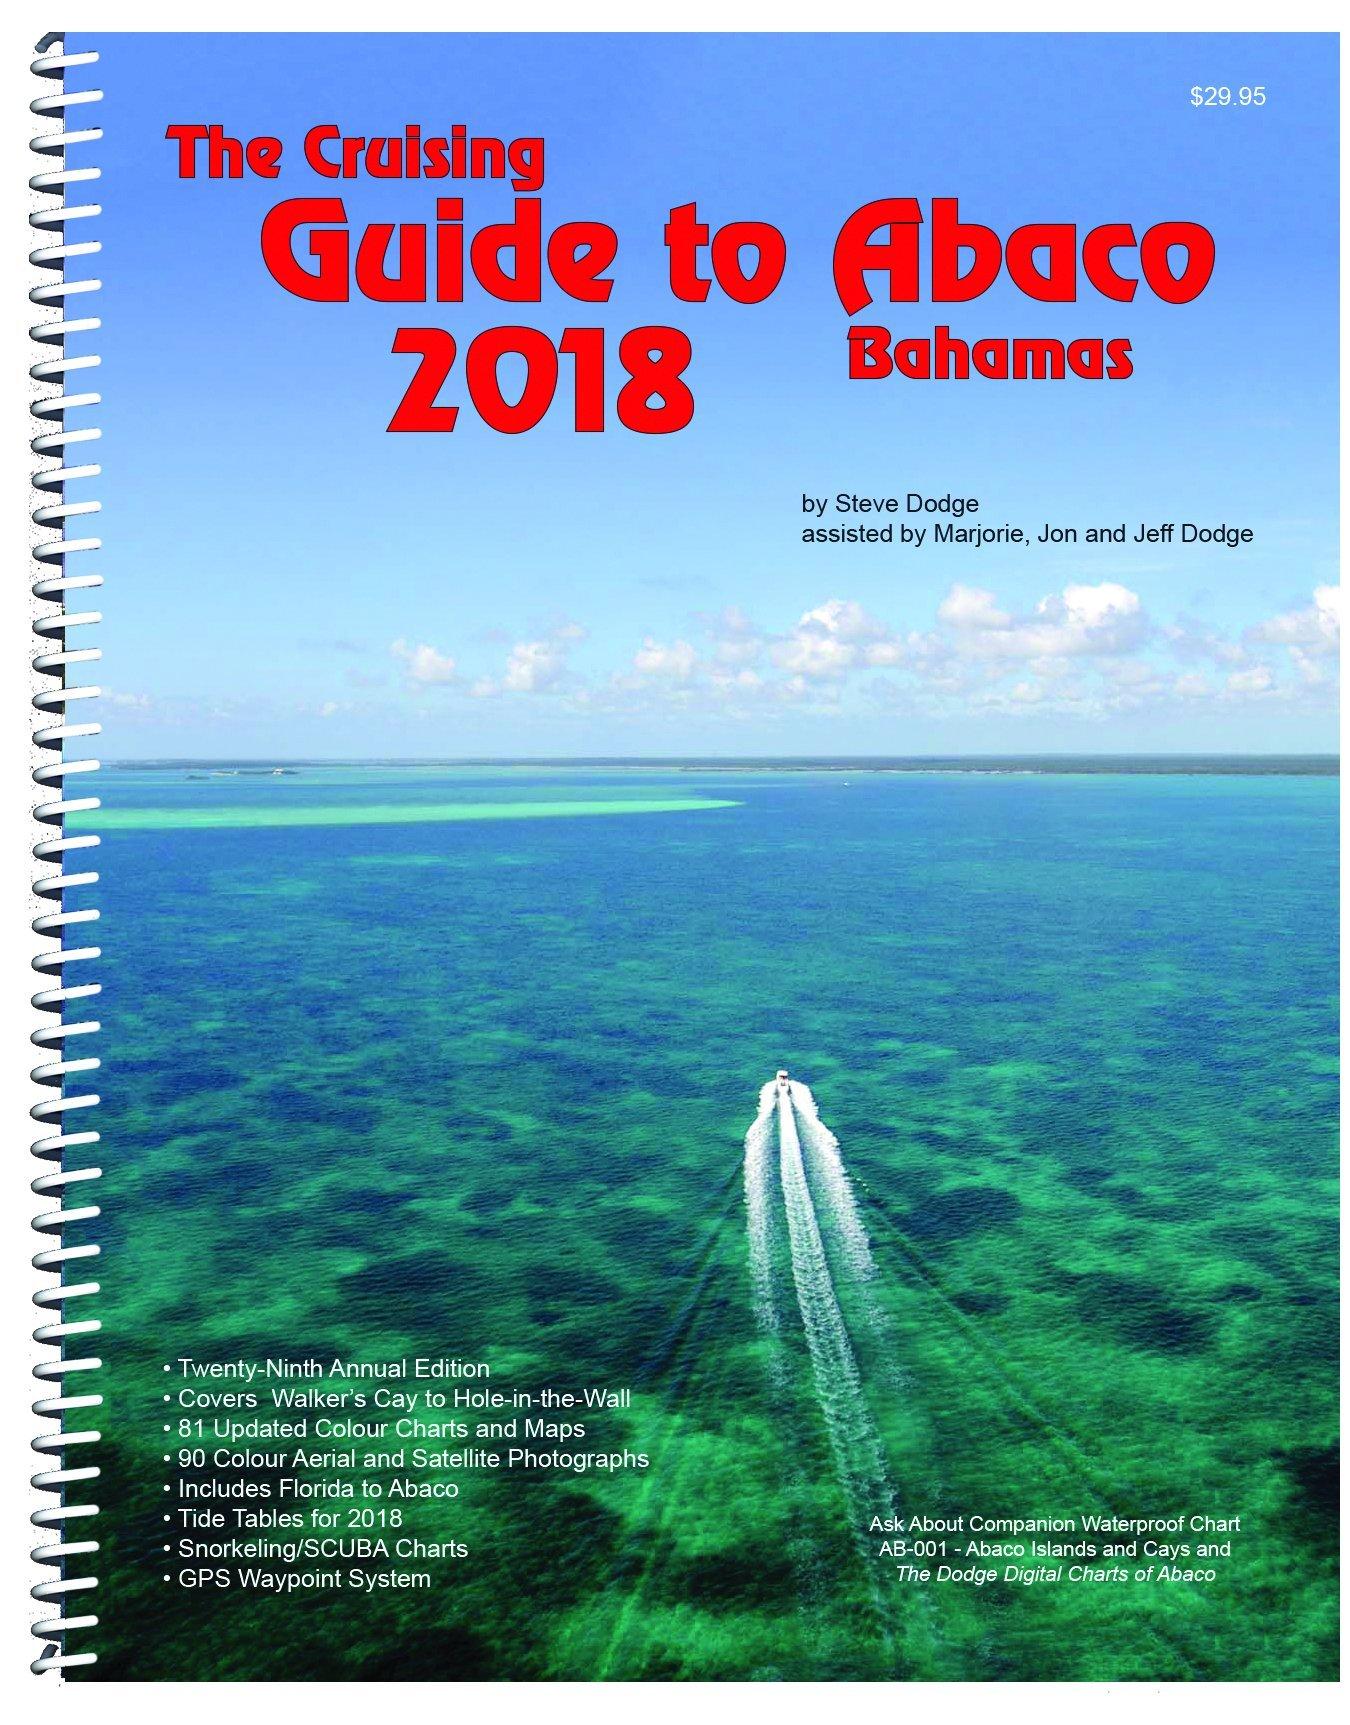 The cruising guide to abaco bahamas 2018 steve dodge the cruising guide to abaco bahamas 2018 steve dodge 9780932265982 amazon books nvjuhfo Gallery